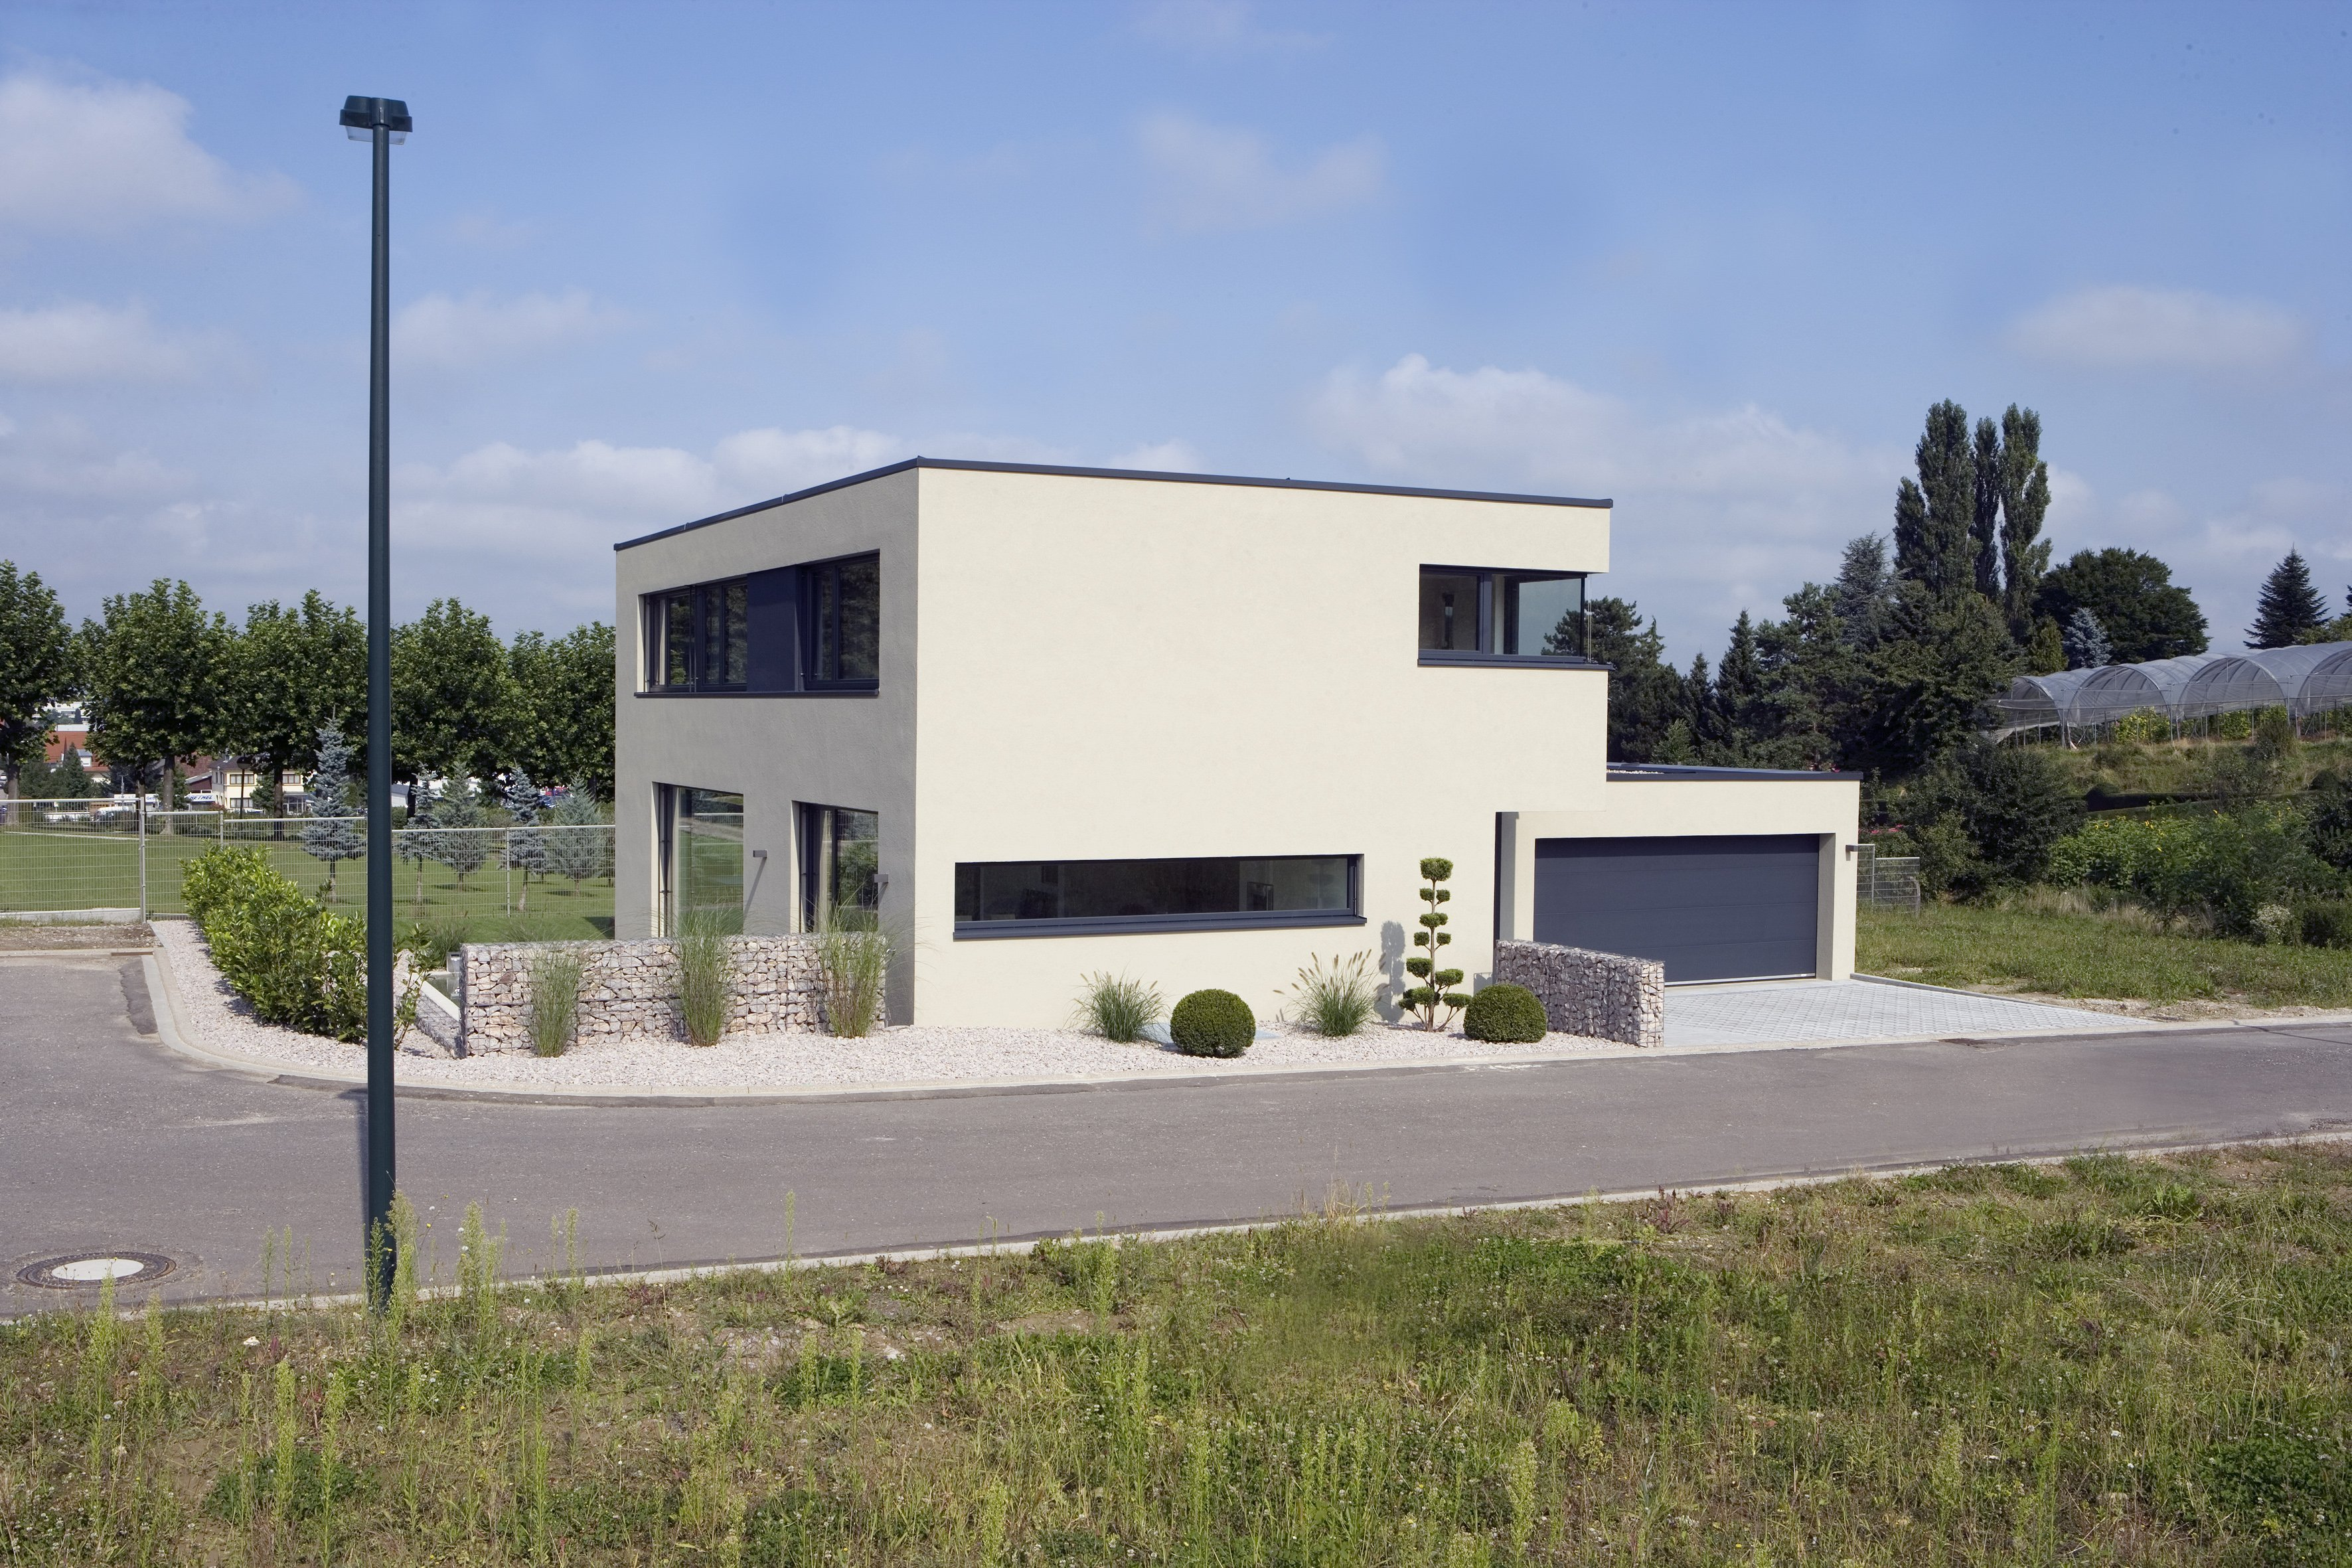 Sustainable concrete home uses bespoke Isokorb